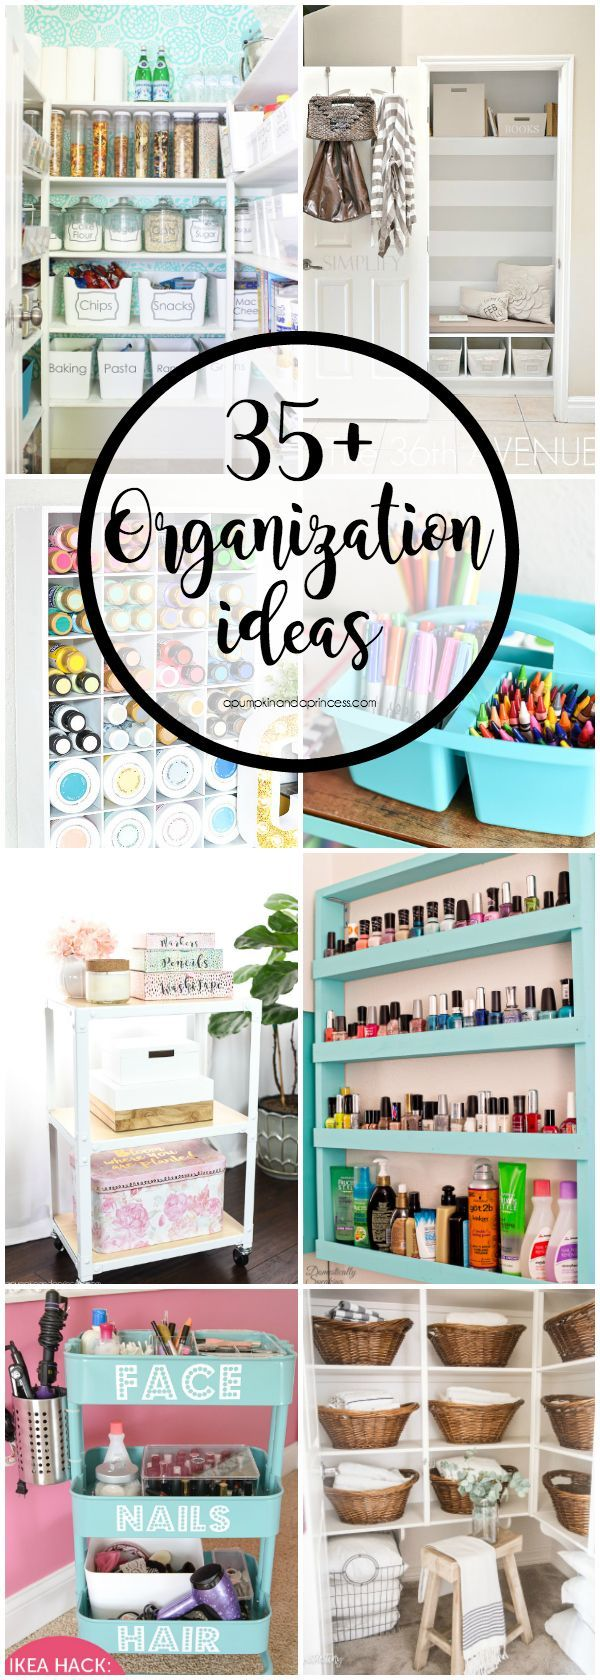 Bedroom Organization Tips 25+ best home organization tips ideas on pinterest | cleaning